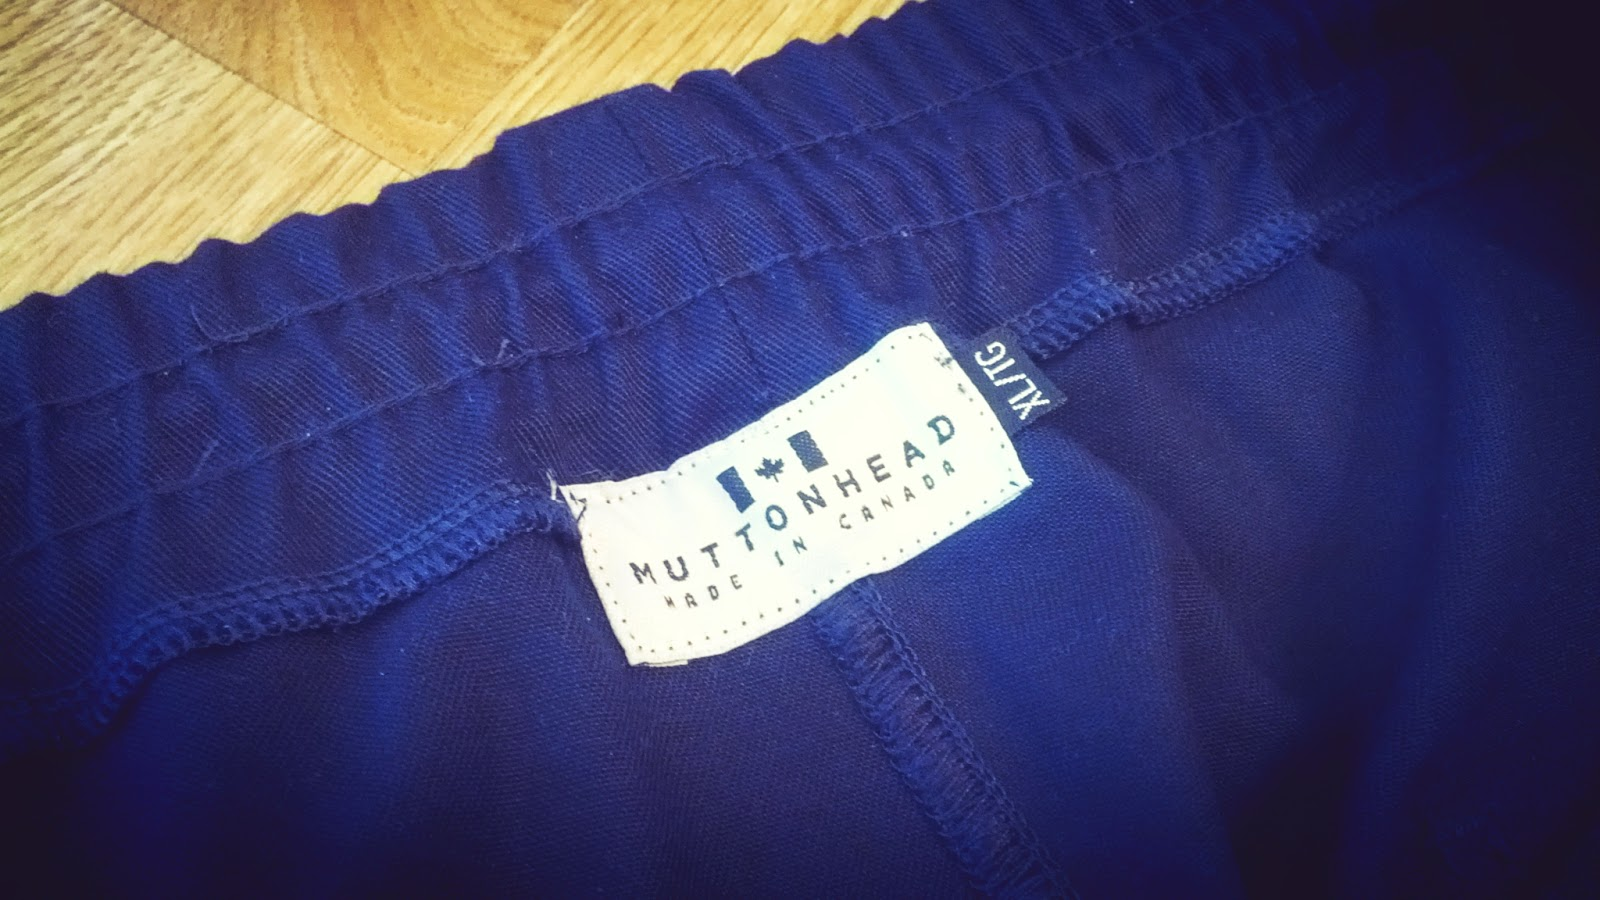 PRODUCT REVIEW: Muttonhead cycling pants